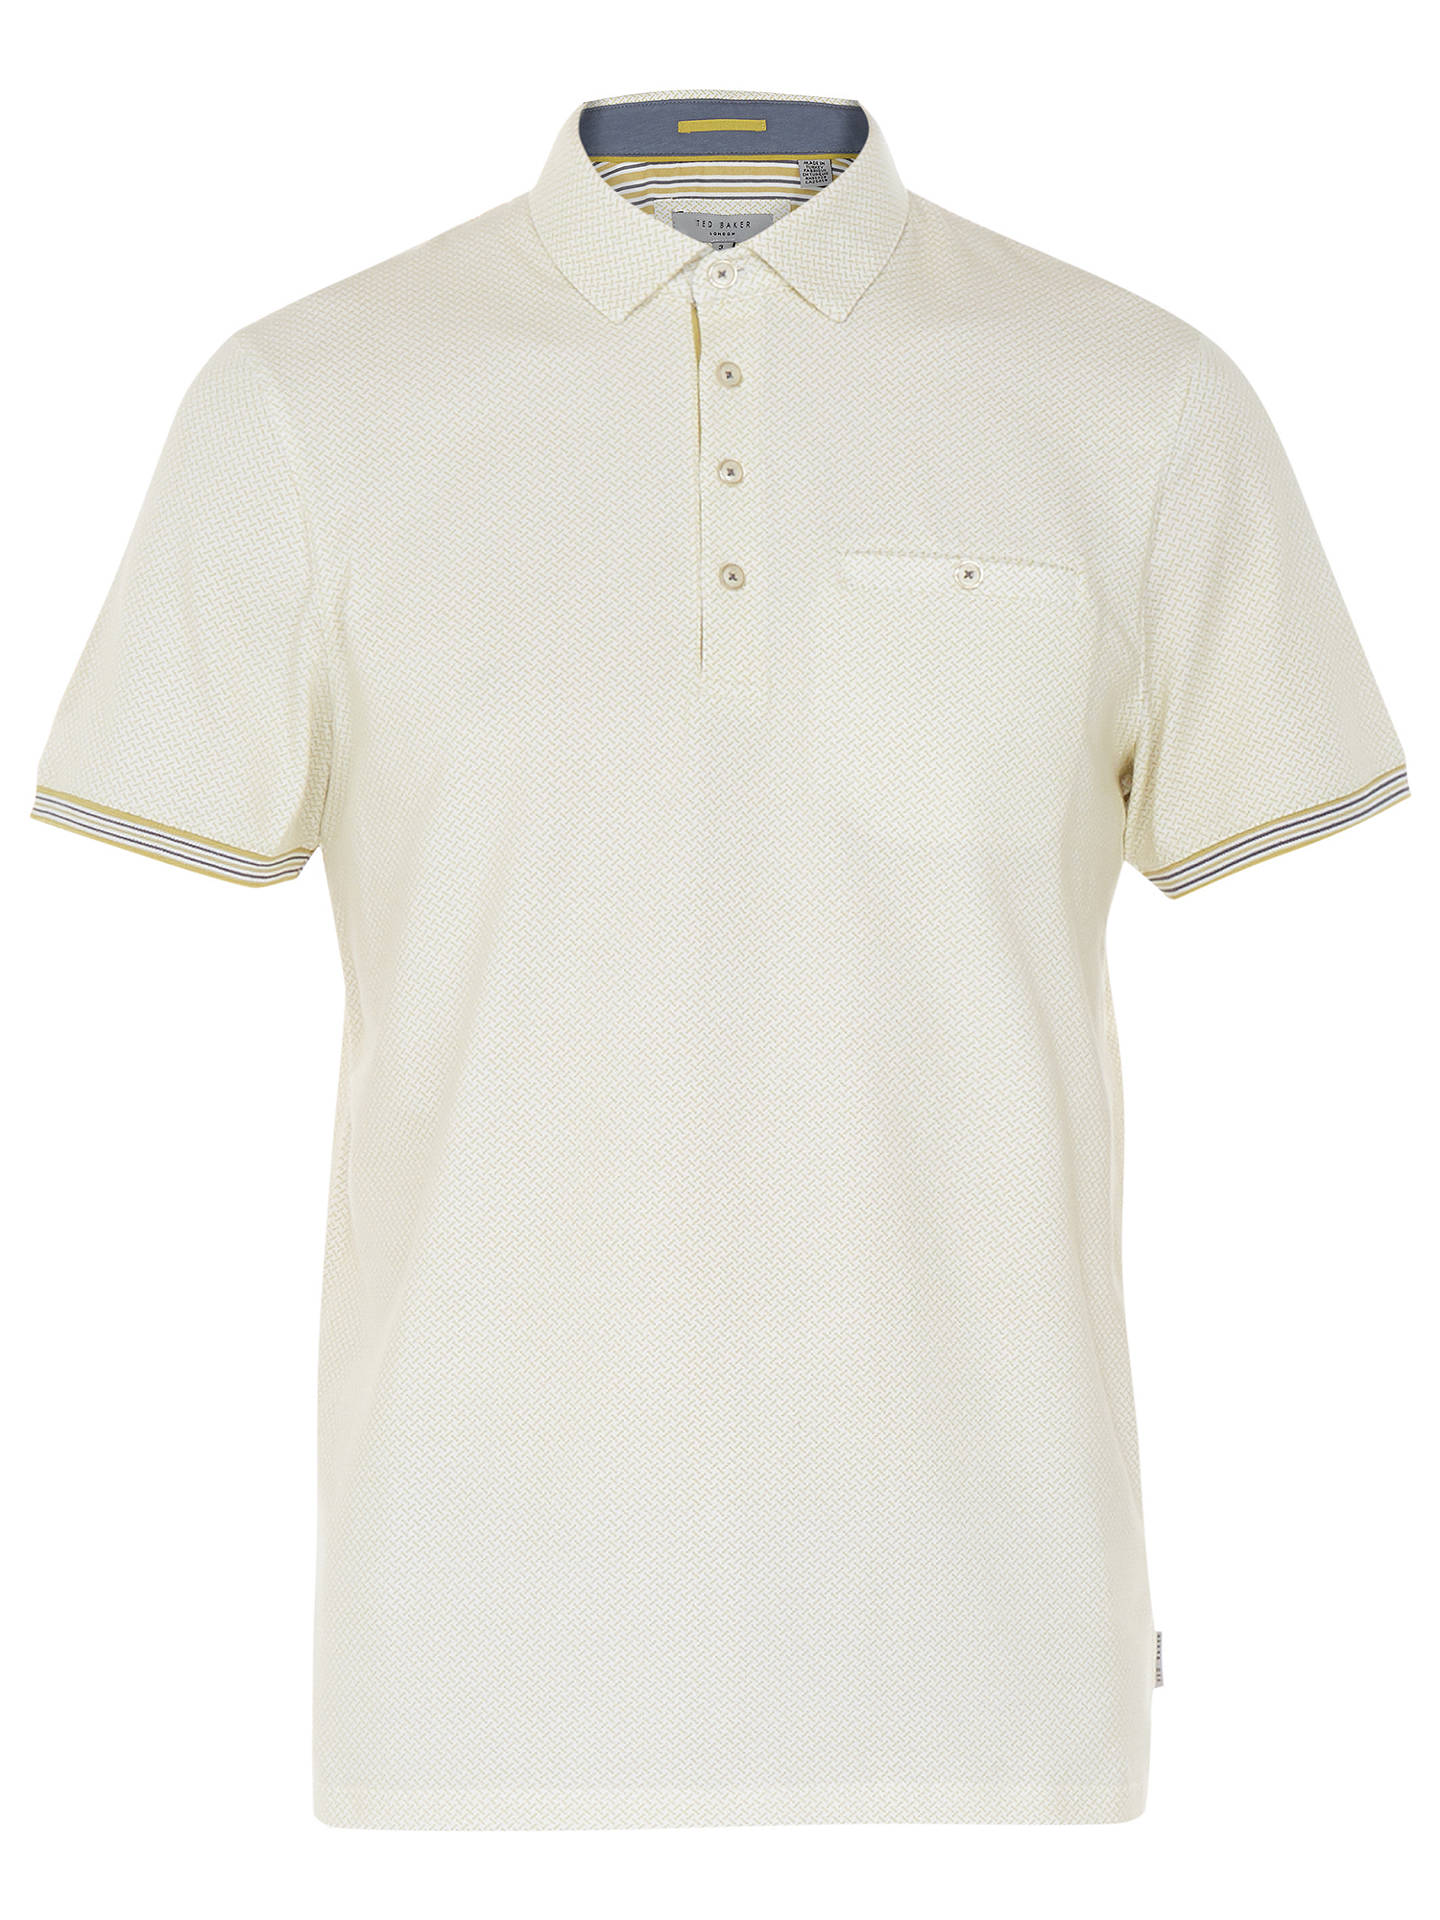 BuyTed Baker Lemsher Short Sleeve Polo Shirt, Yellow, 7 Online at johnlewis.com